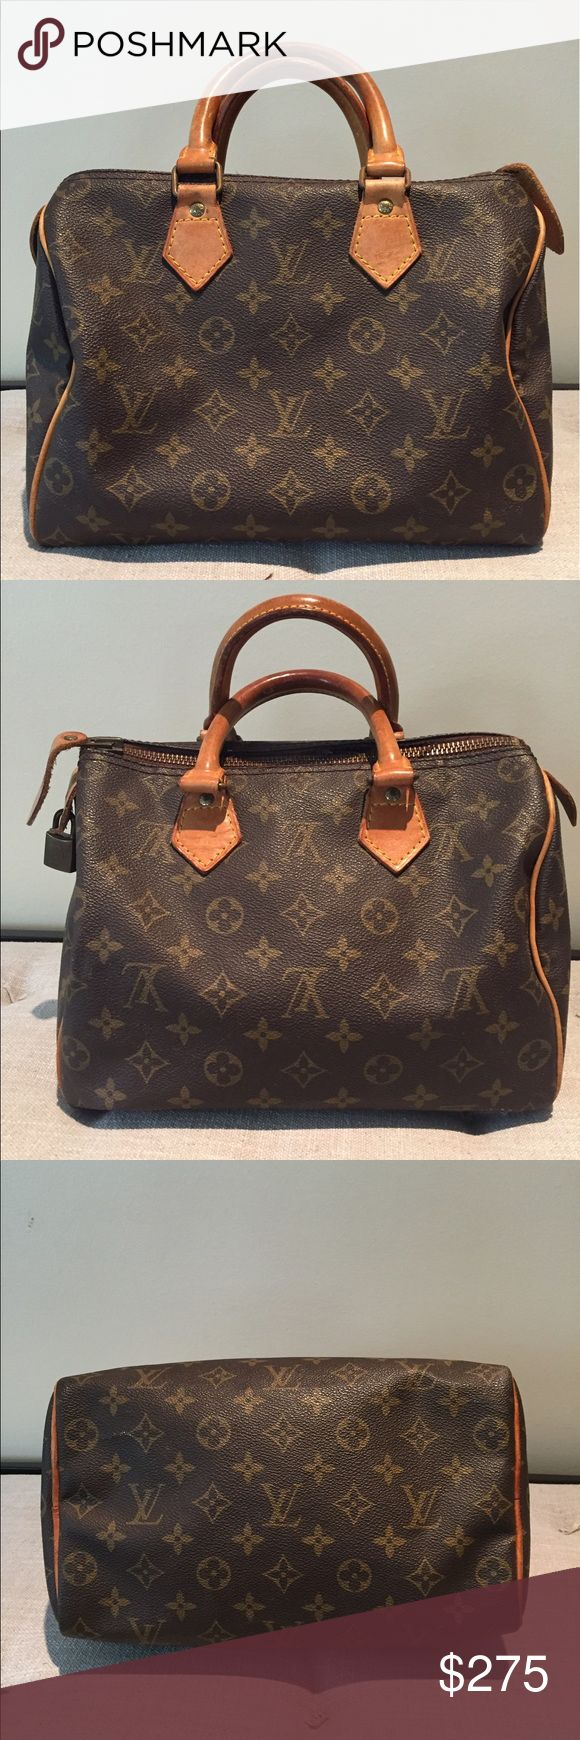 aa7c27655b4 Louis Vuitton Speedy 35 Dust Bag